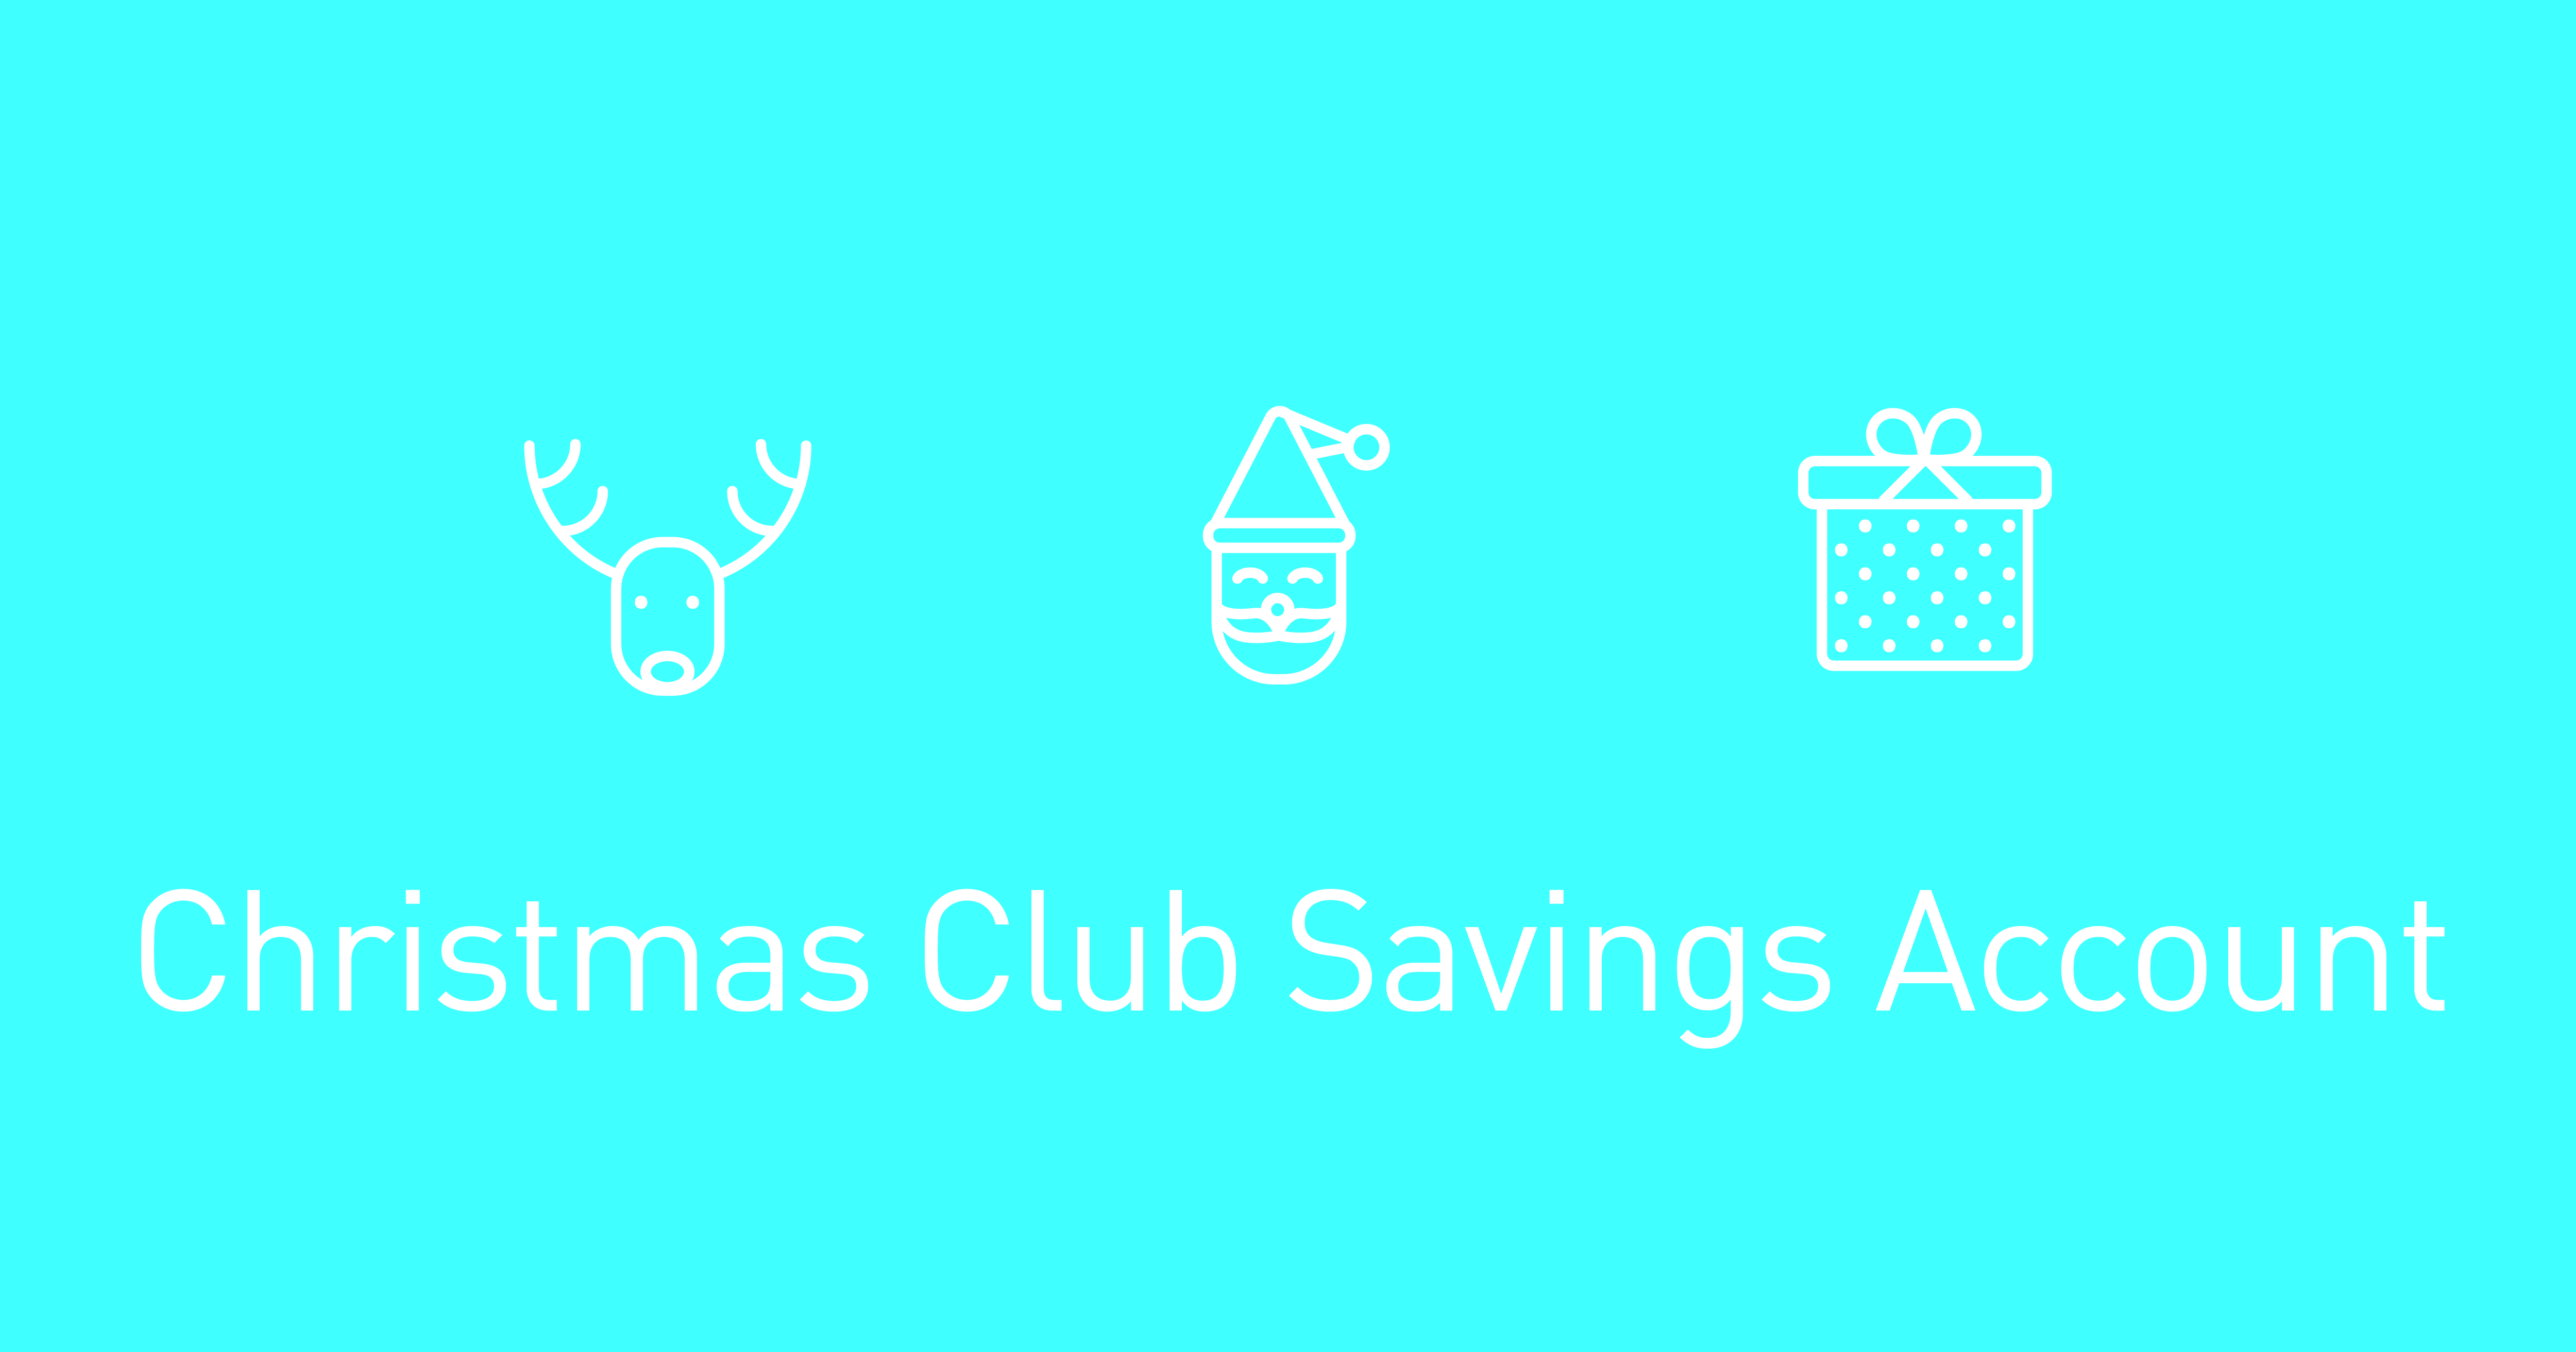 police bank special purpose savings accounts - Christmas Club Account